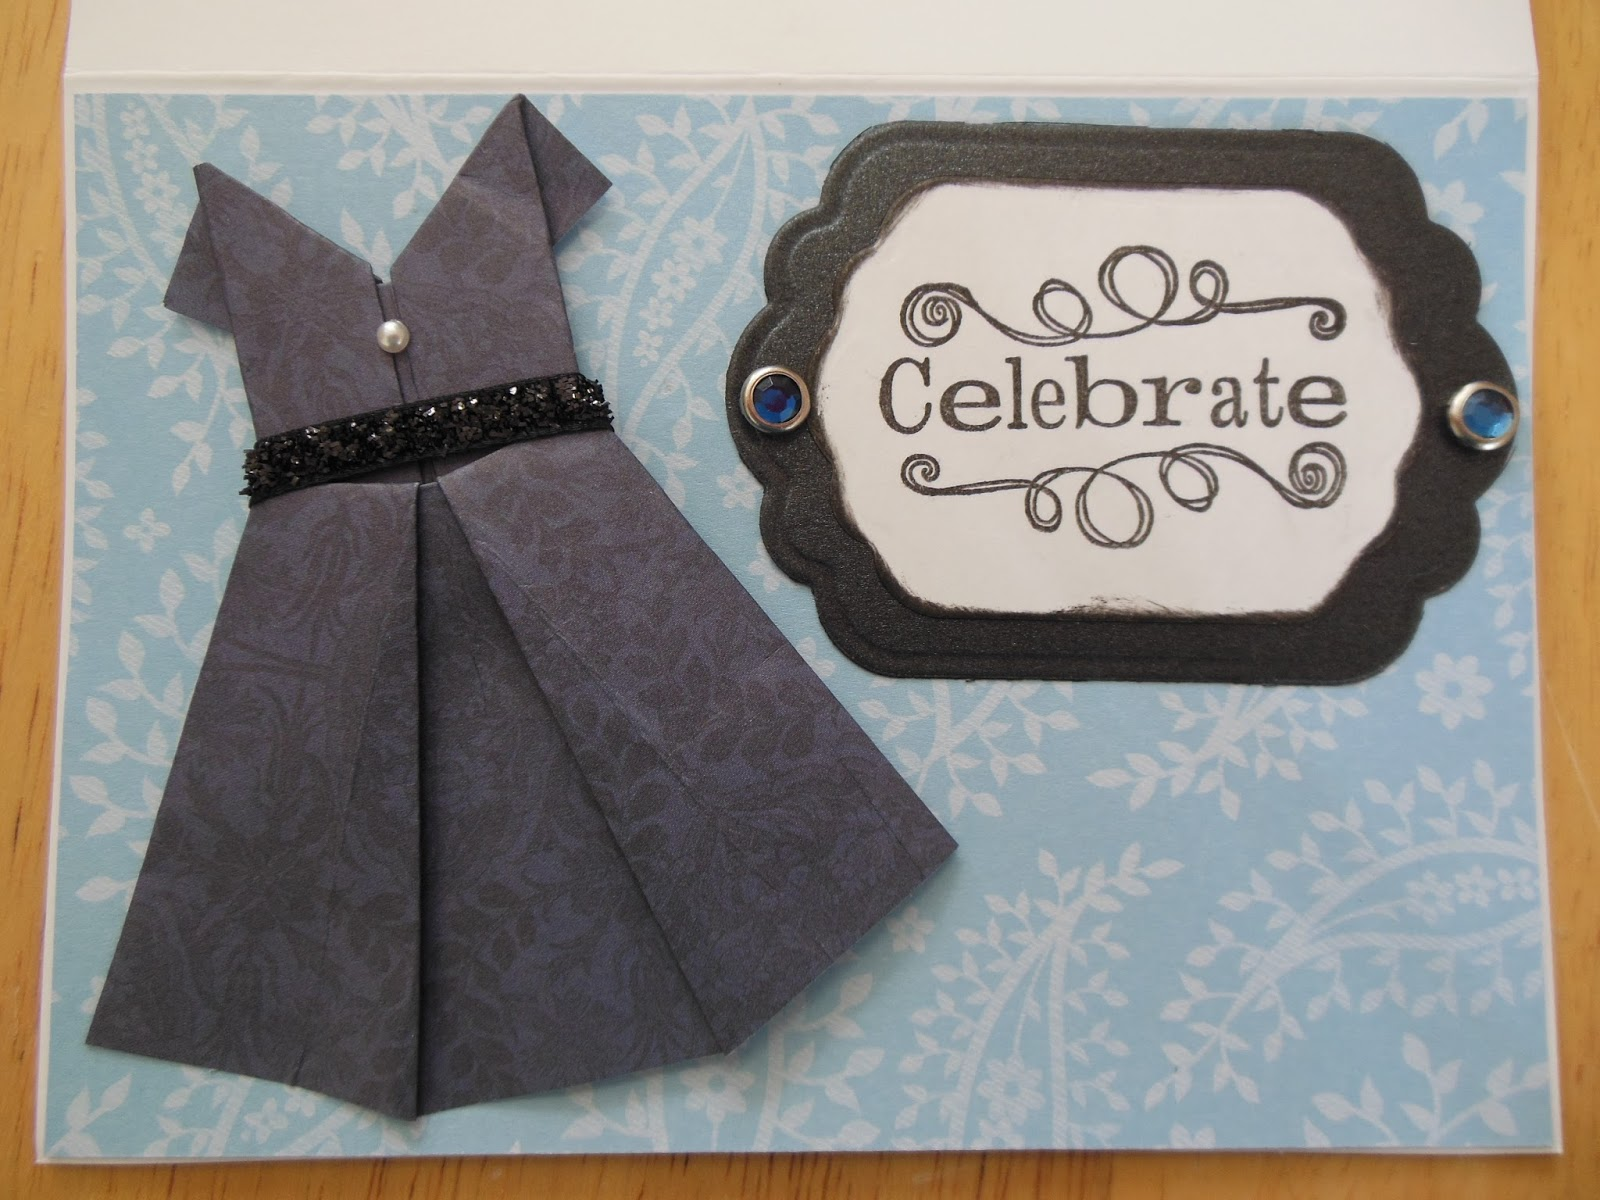 Kathy s AngelNik Designs & Art Project Ideas Fun New 3D Birthday